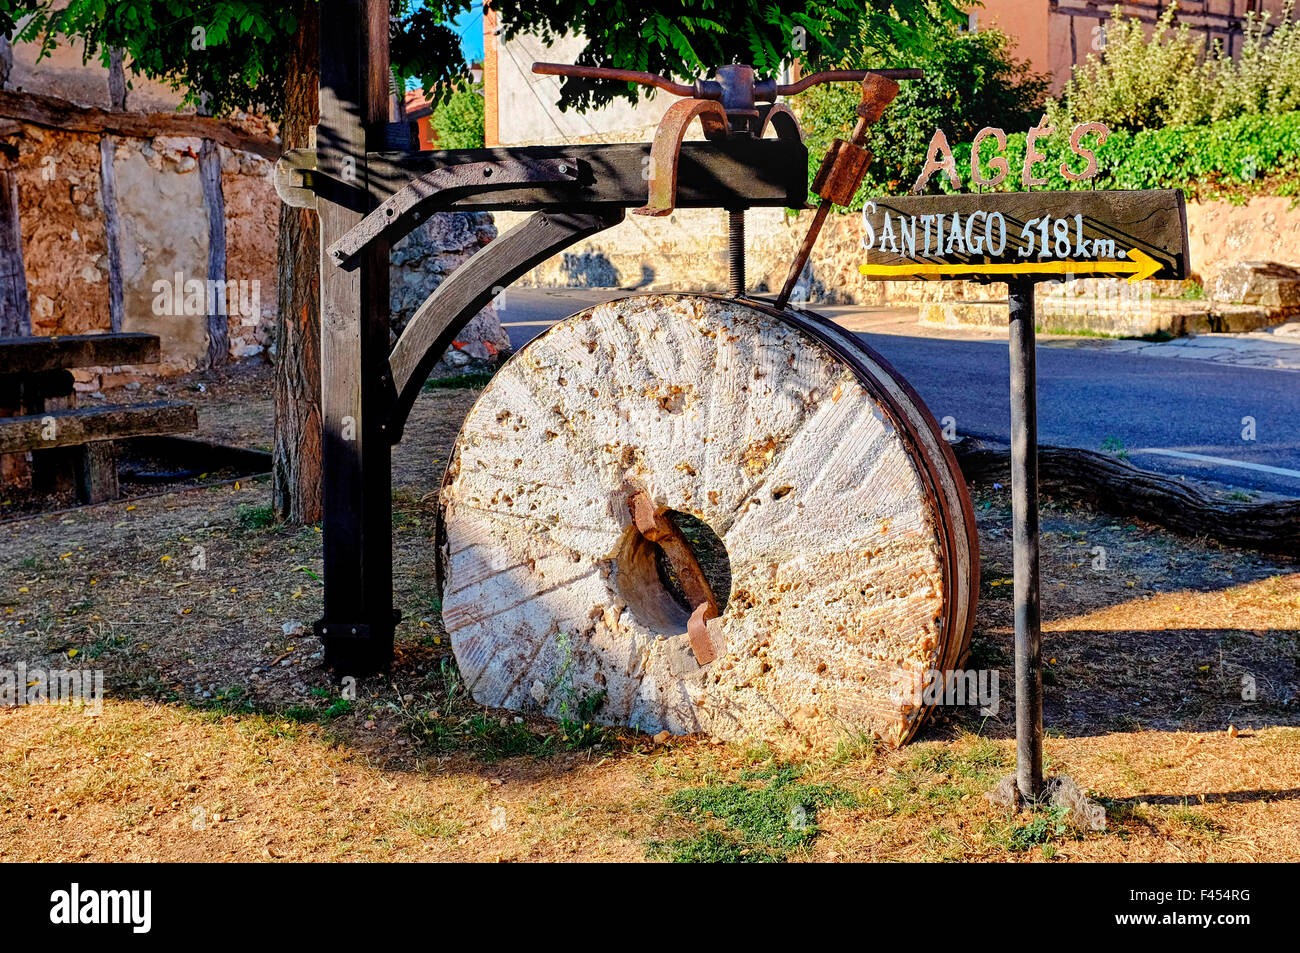 Stone grinding wheel in Agés with directions for the Way of Saint James (Camino de Santiago), Castile and León, - Stock Image